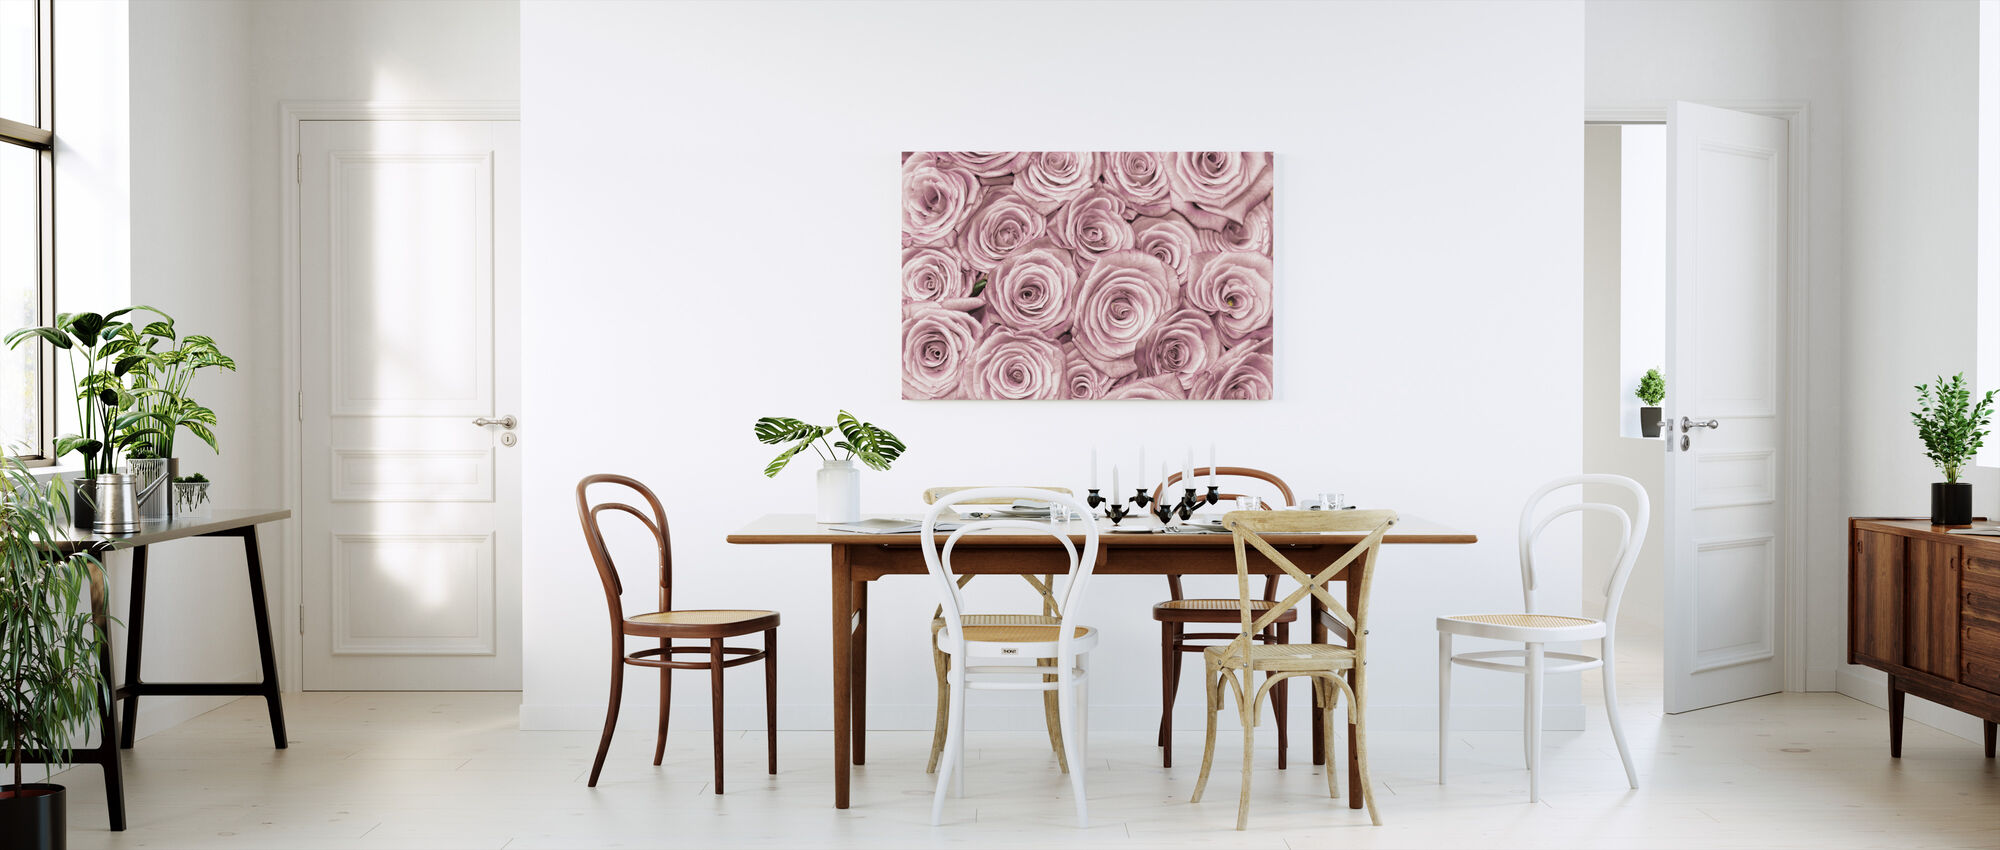 Wall of Roses - Canvas print - Kitchen